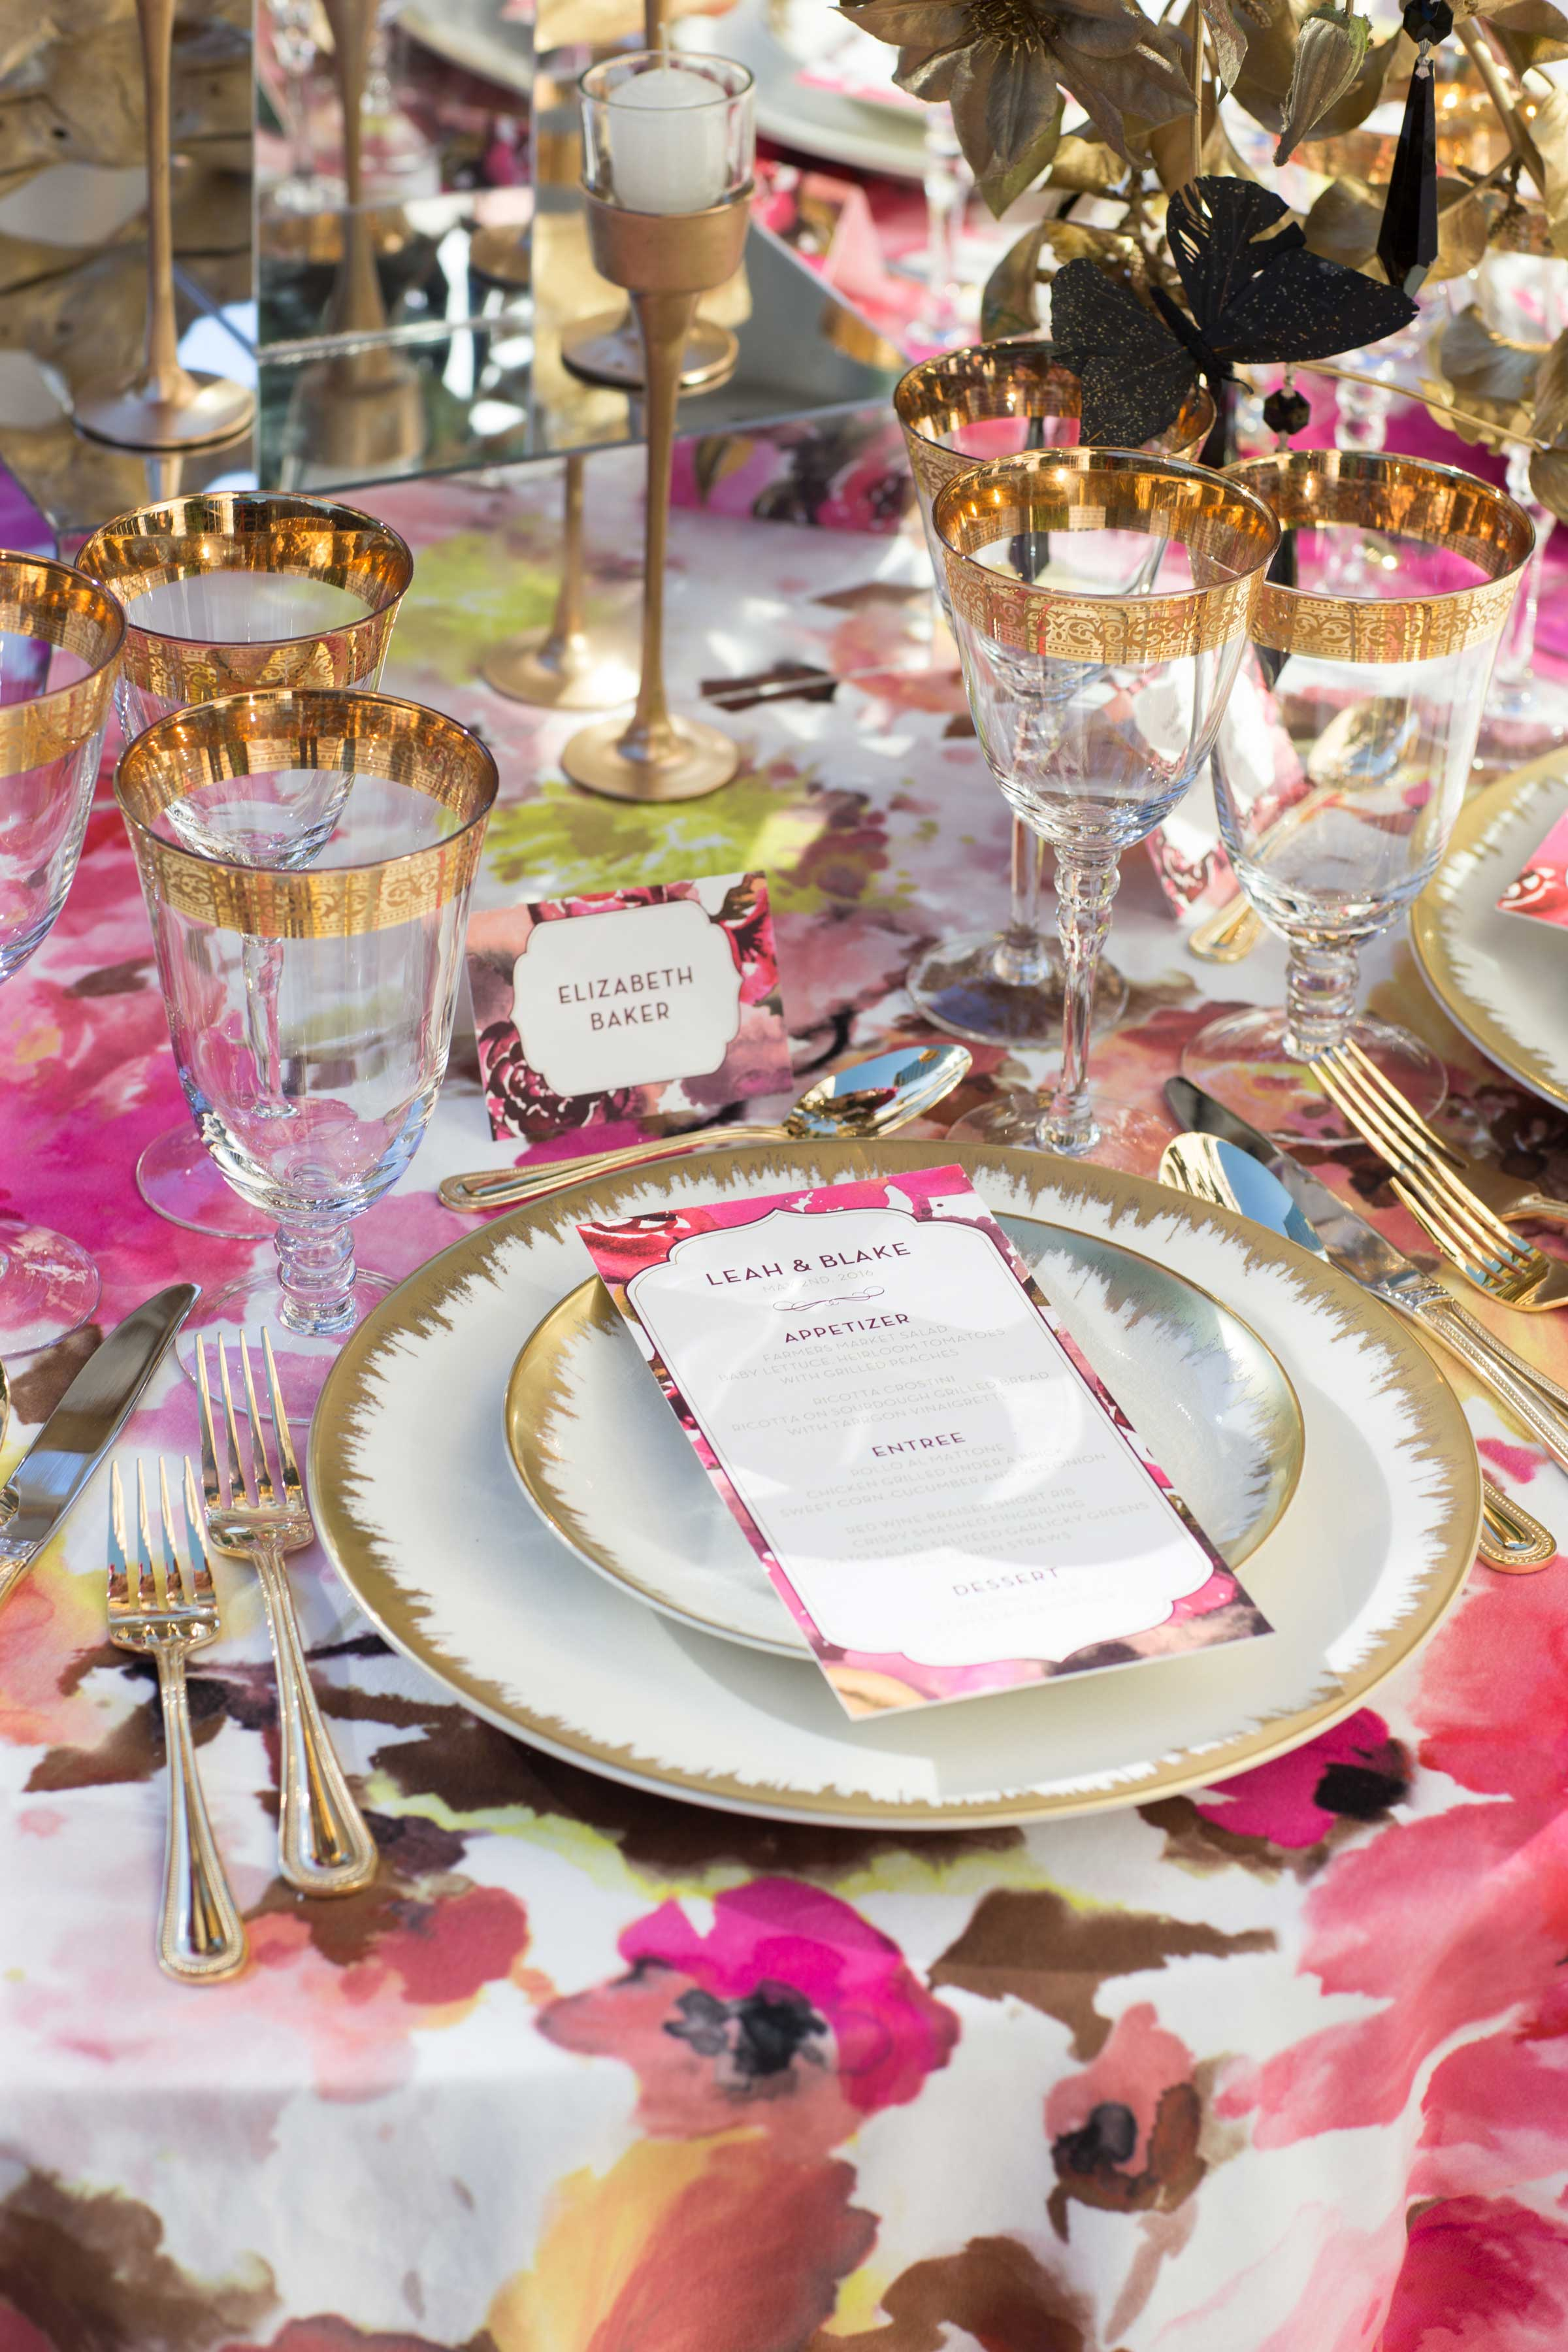 Bright pink linens at wedding styled shoot table inspired by Chanel and Alexander McQueen